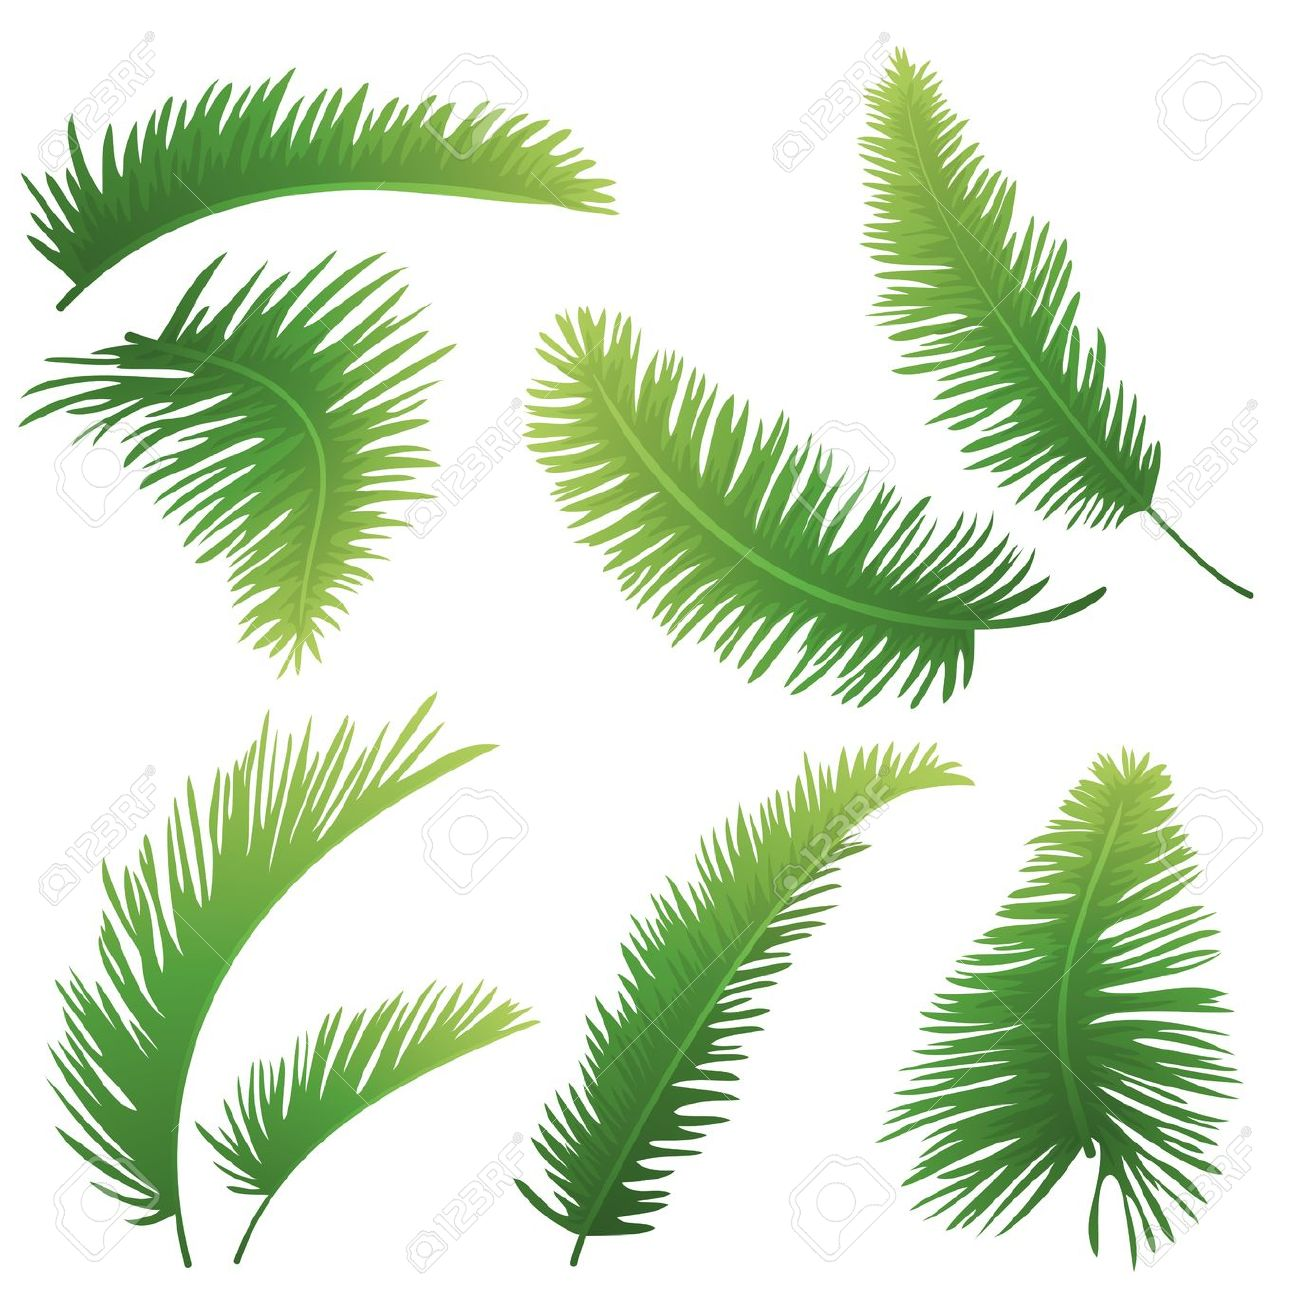 Palm frond palm leaf clipart #3